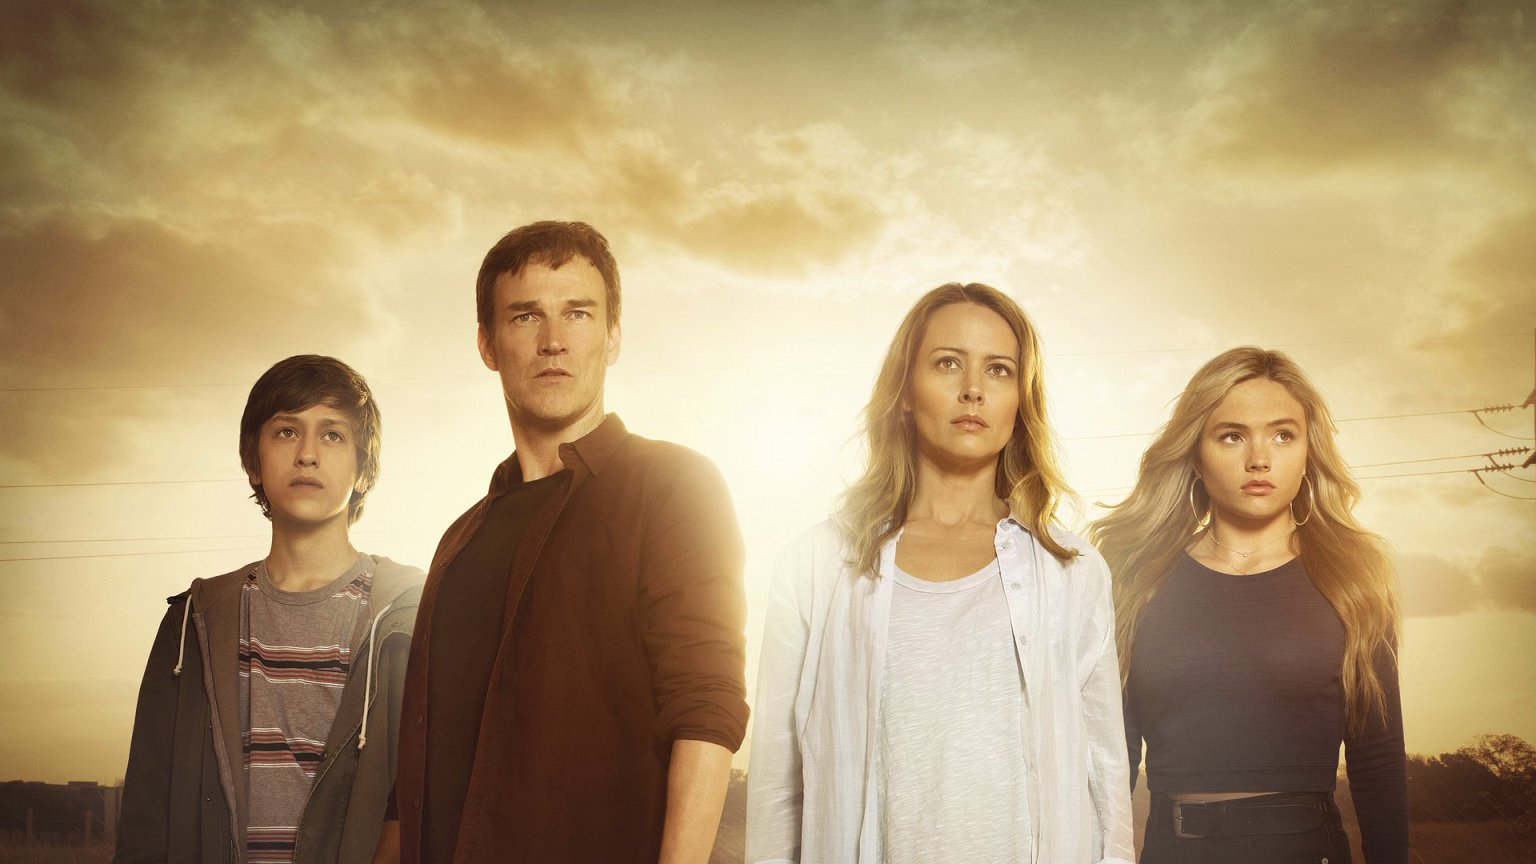 The Gifted season 2 air time